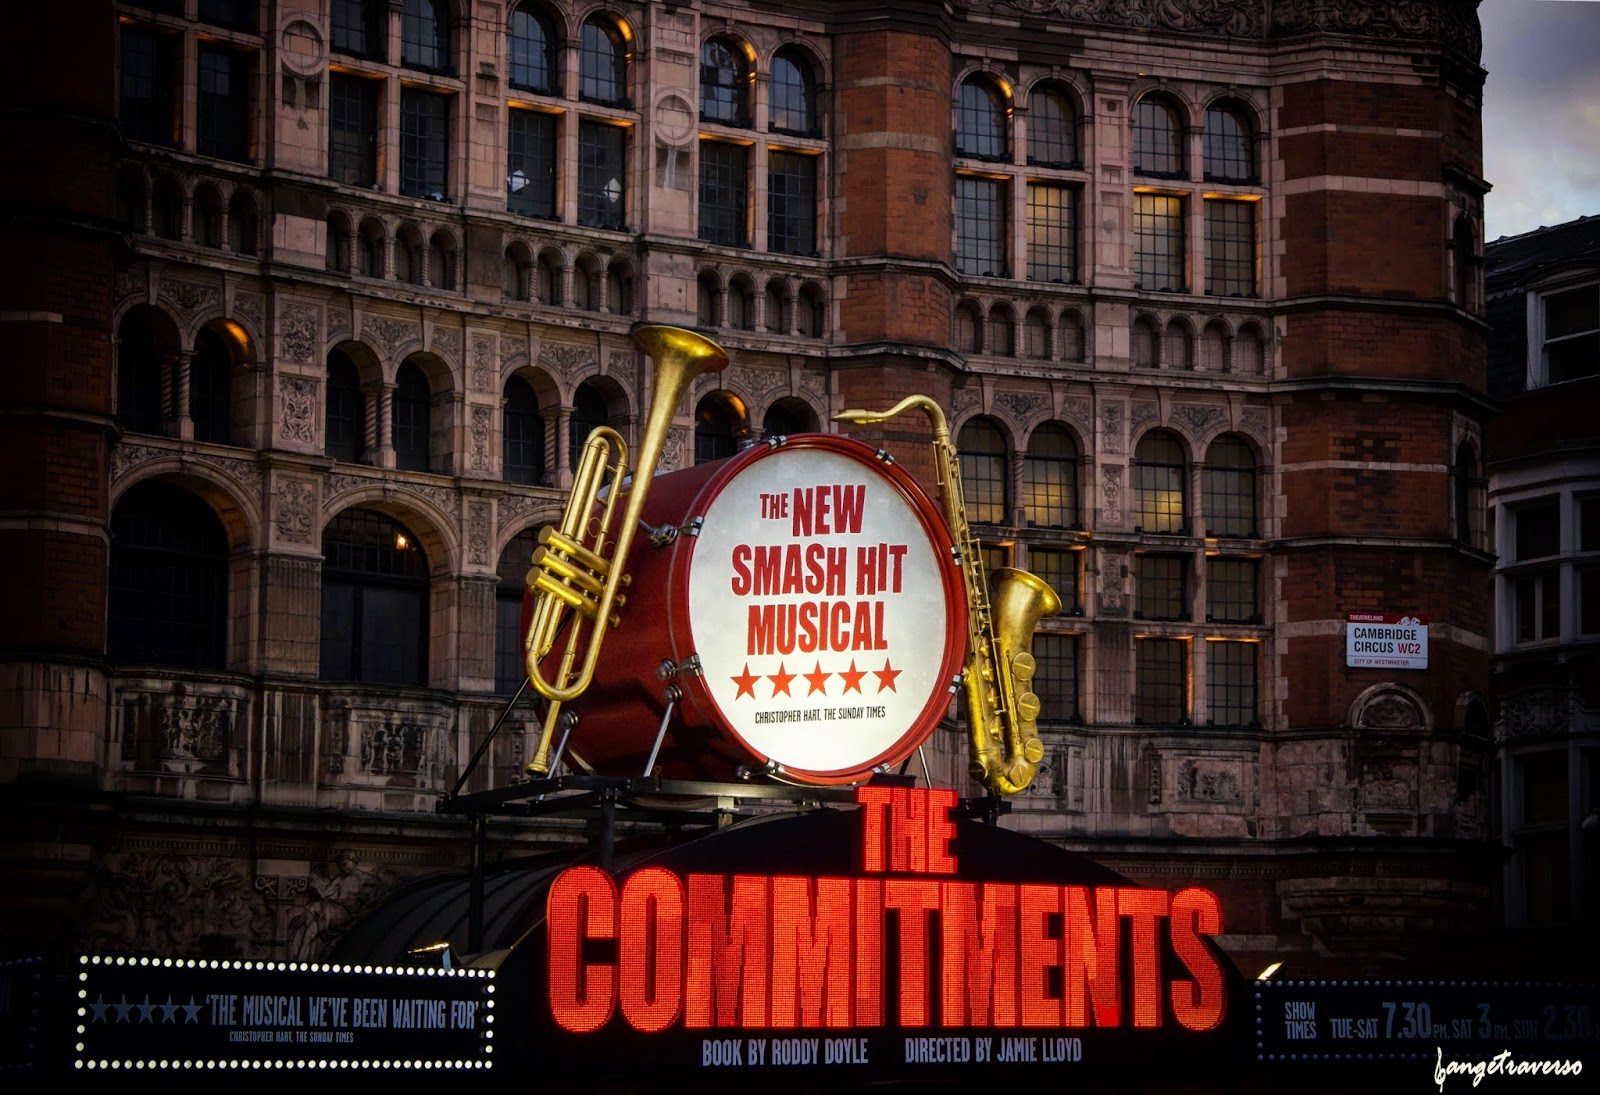 Musical comedy in London